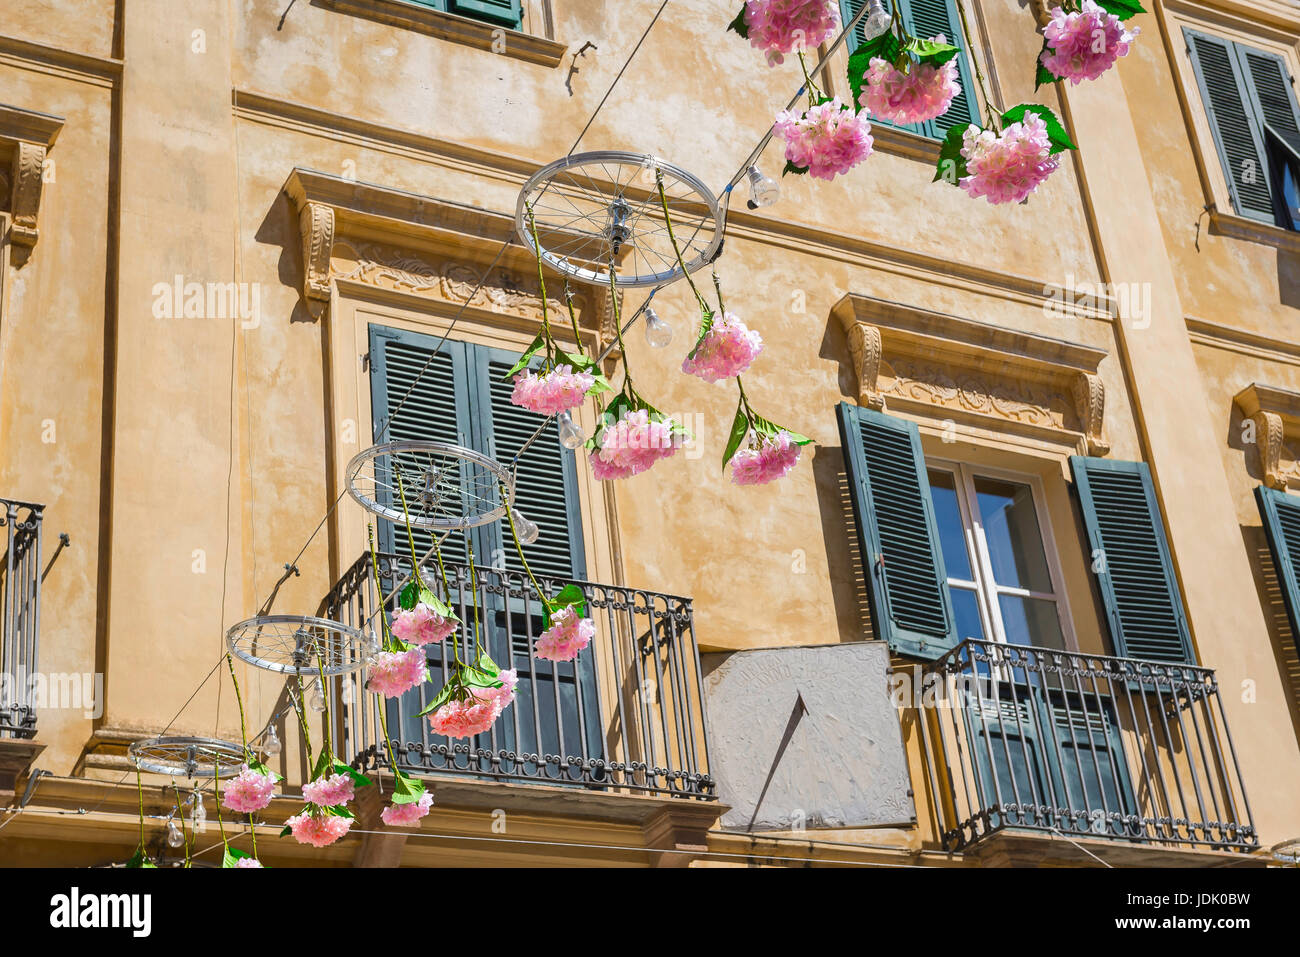 Alghero Sardinia old town, a festive display of pink flowers and bicycle wheels suspended above the Piazza Civica - Stock Image